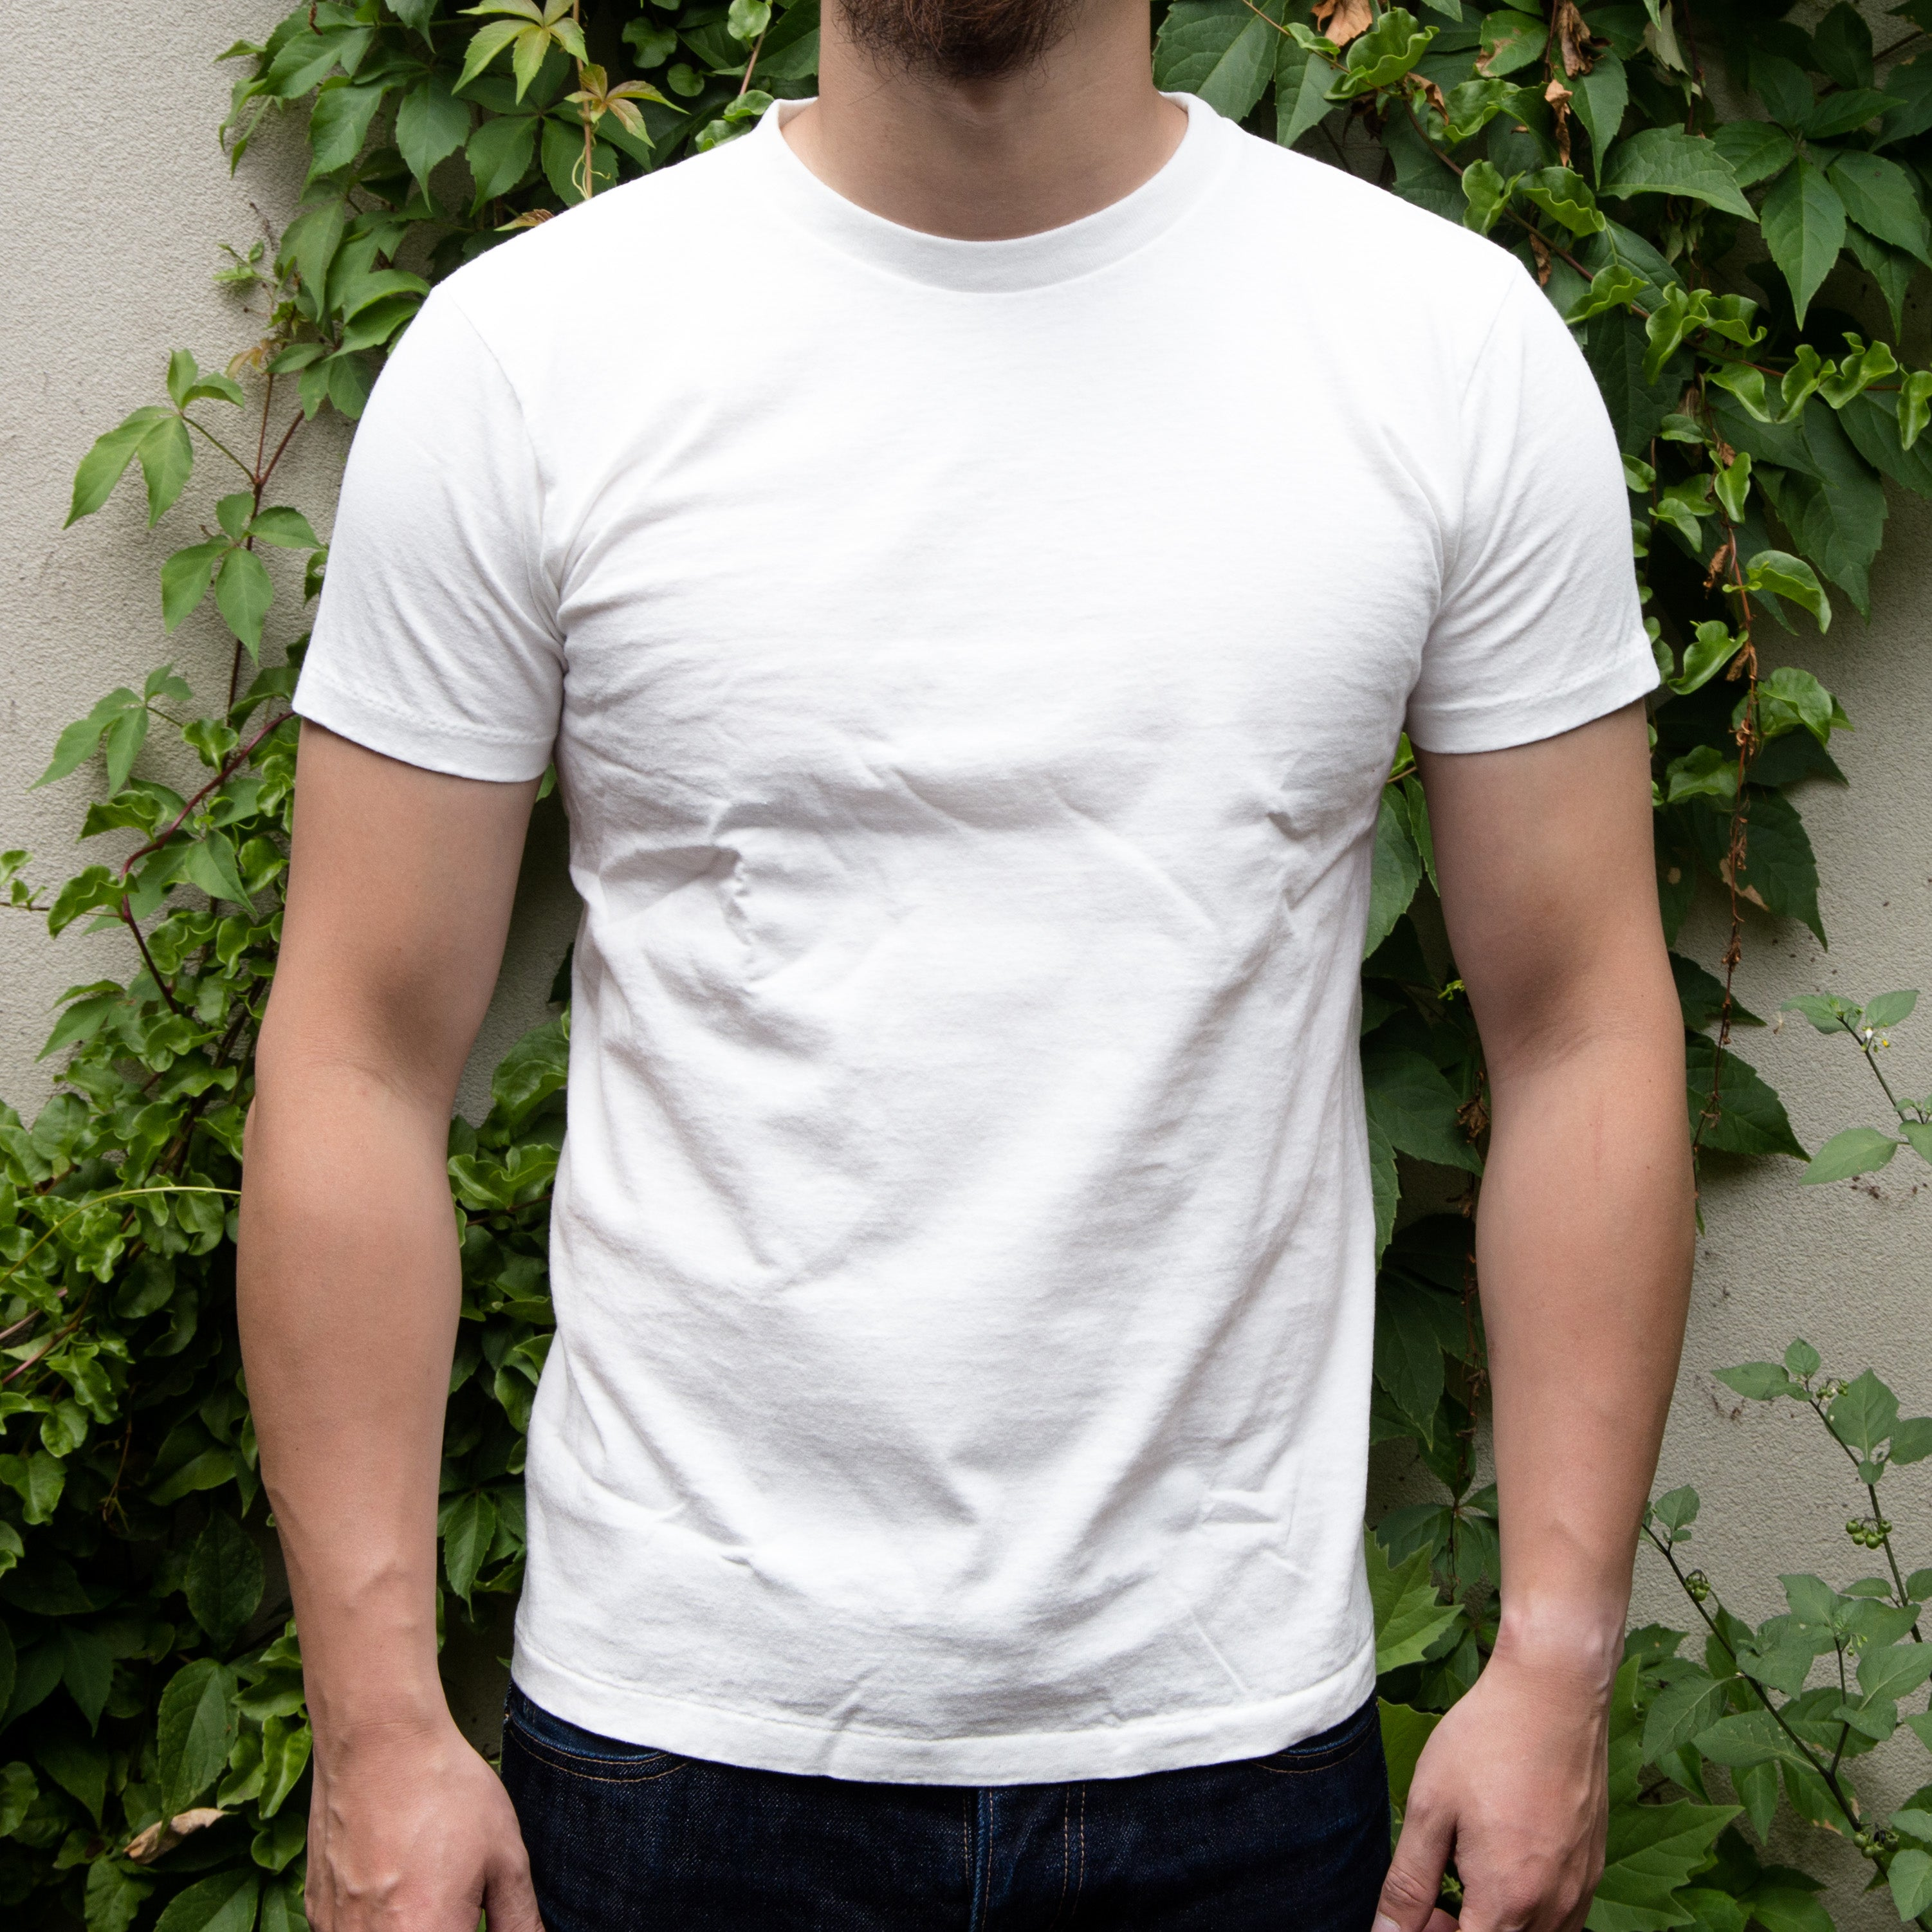 Load image into Gallery viewer, Velva Sheen - S/S Crew neck plain tee in White